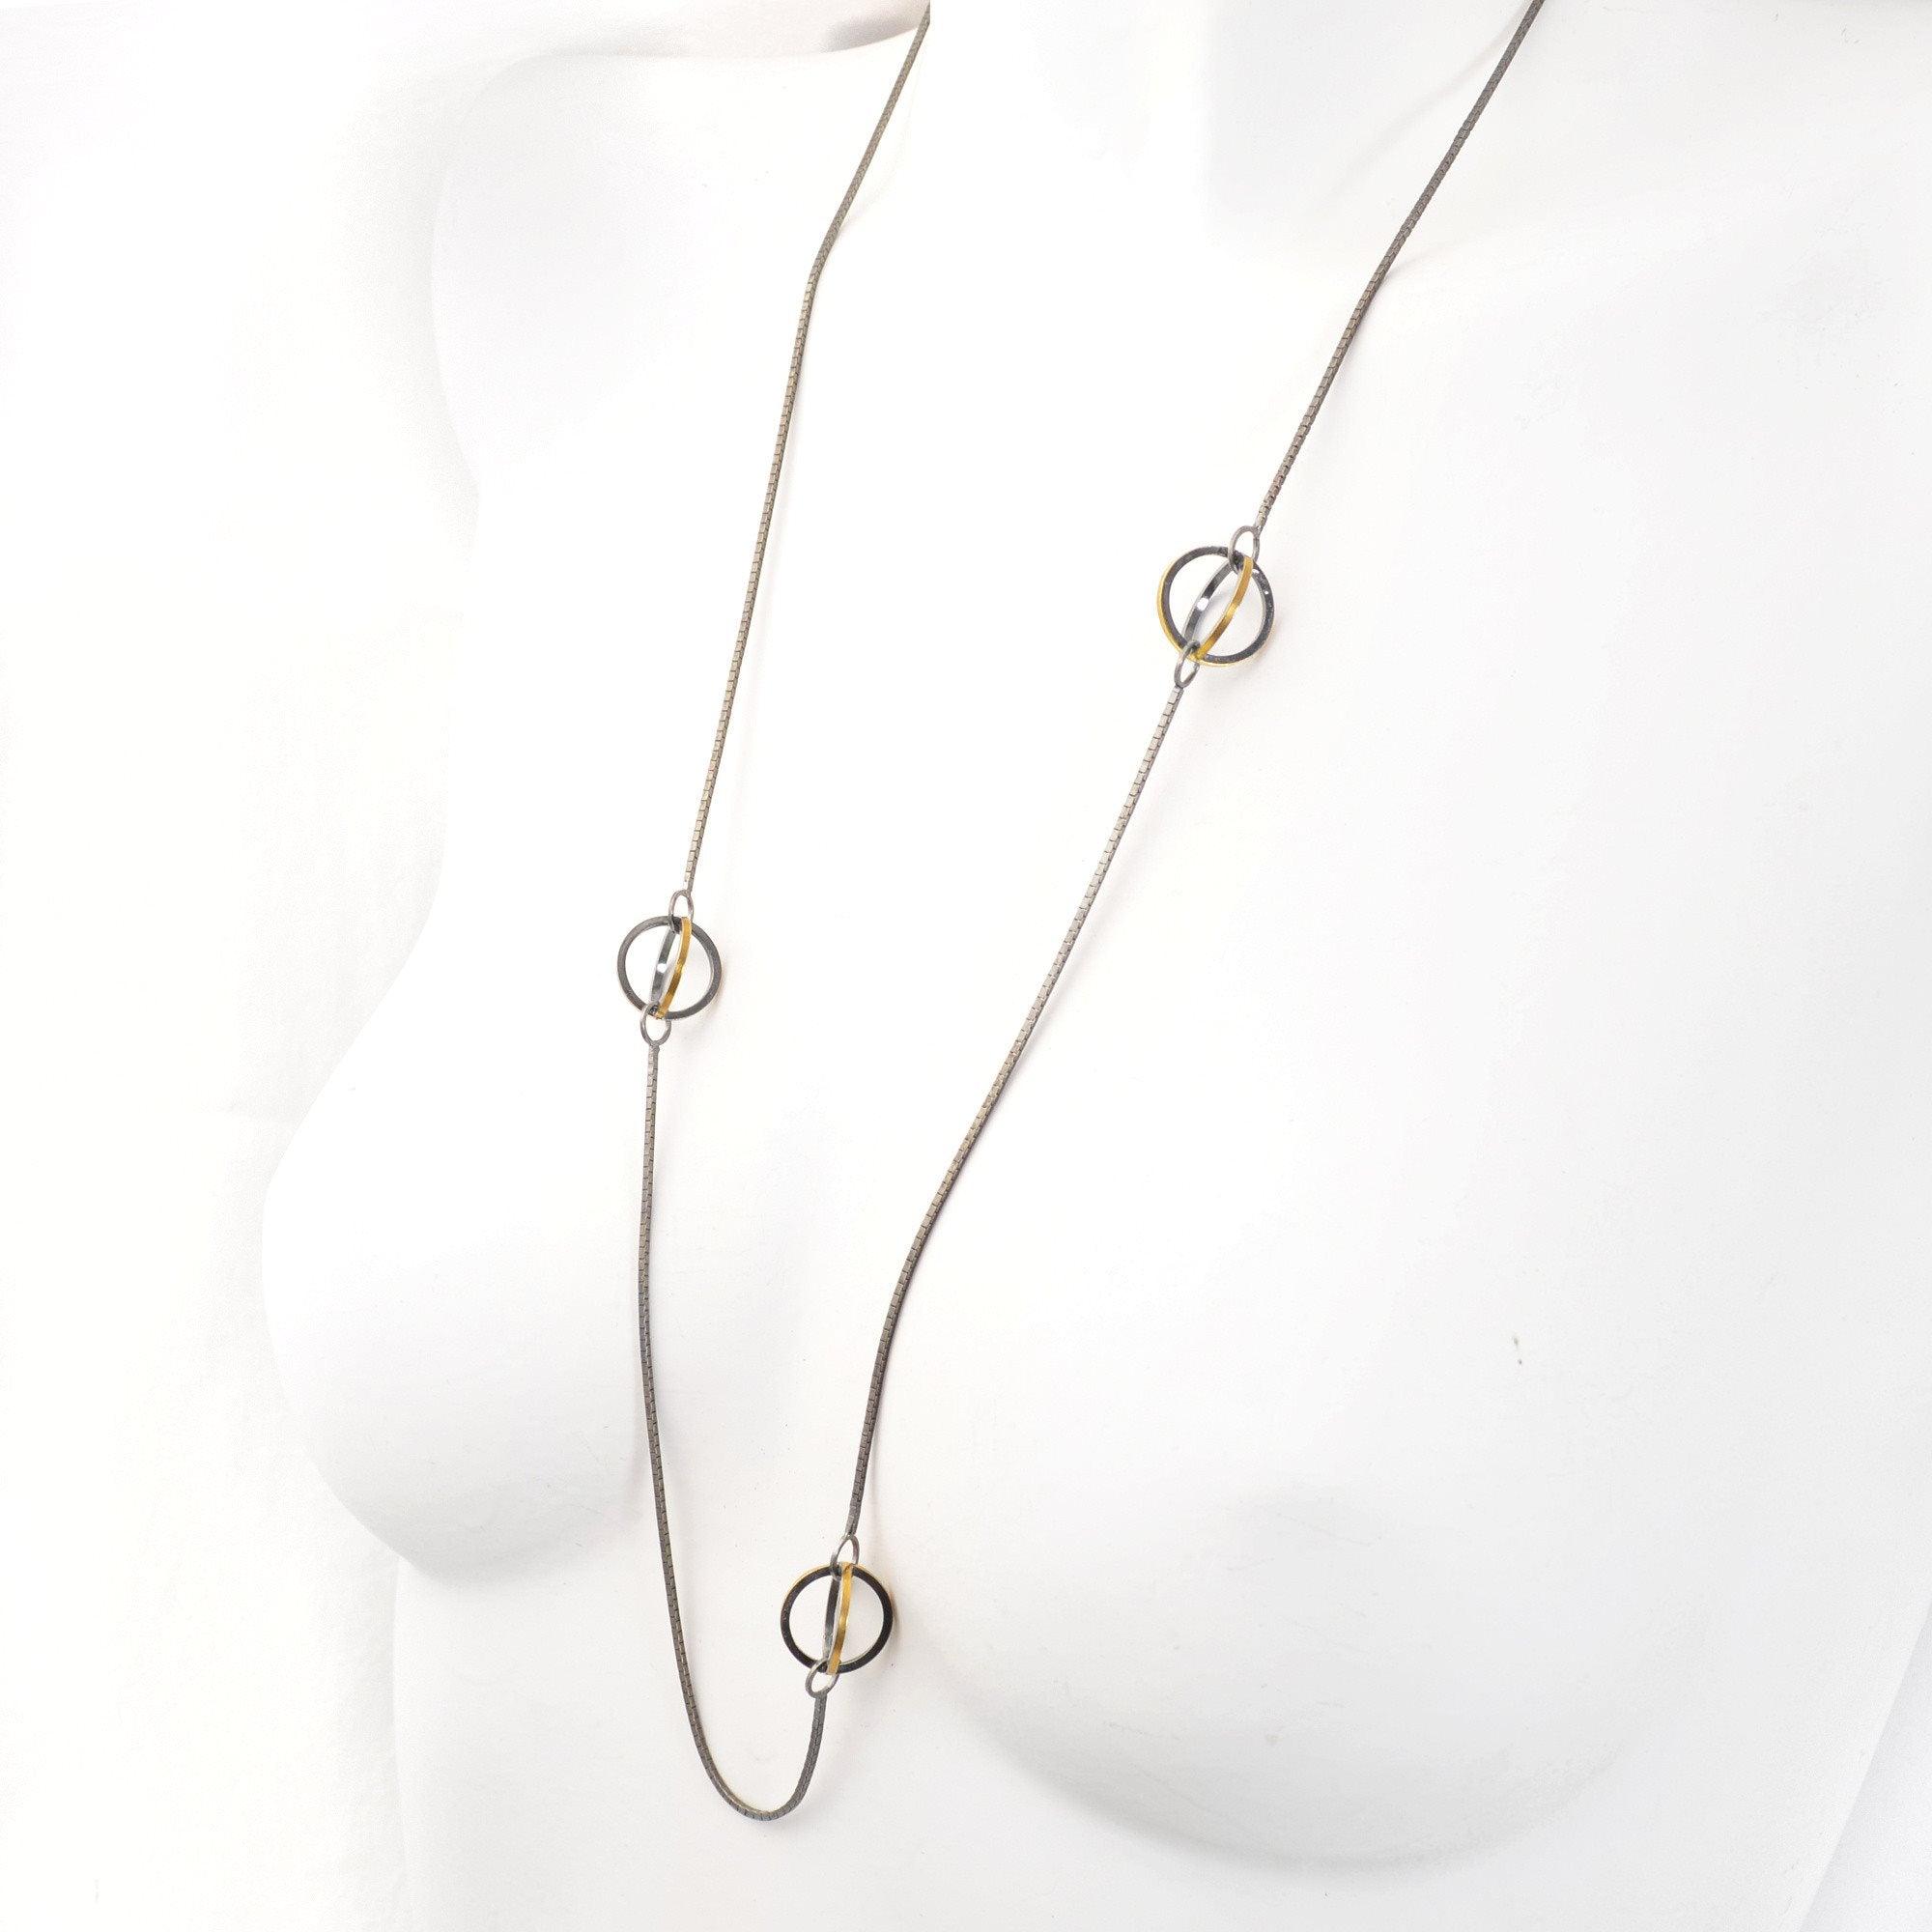 Lattis Long Necklace in 22k and Sterling Silver with 3 Spheres